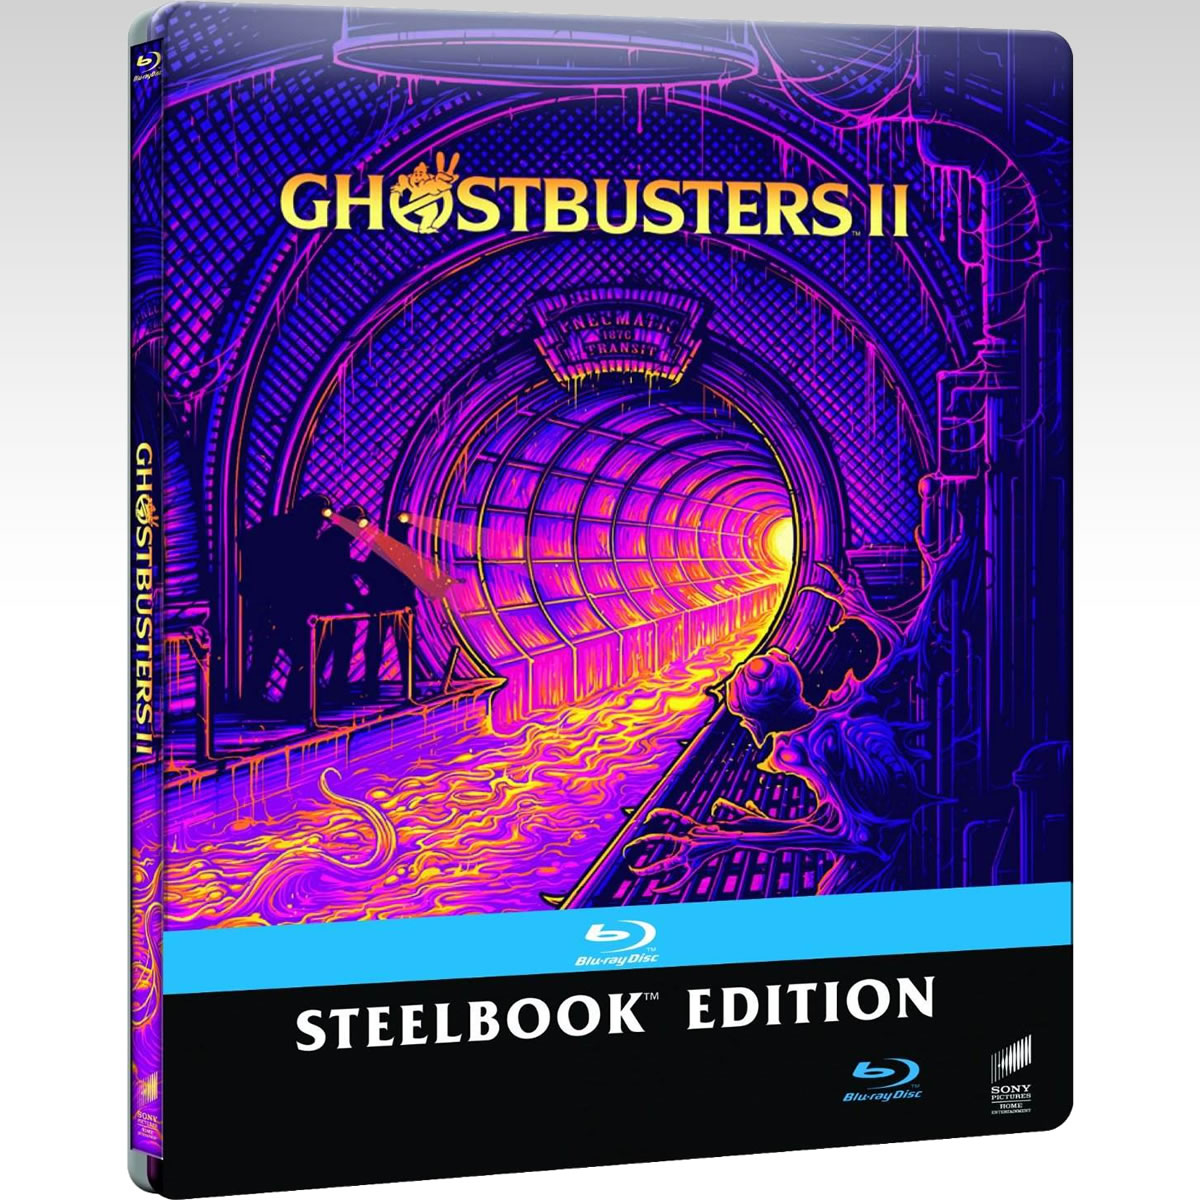 GHOSTBUSTERS II - ������� ����������� 2 [4K MASTERED]  Limited Edition Steelbook [��������� �� ���������� ����������] (BLU-RAY)